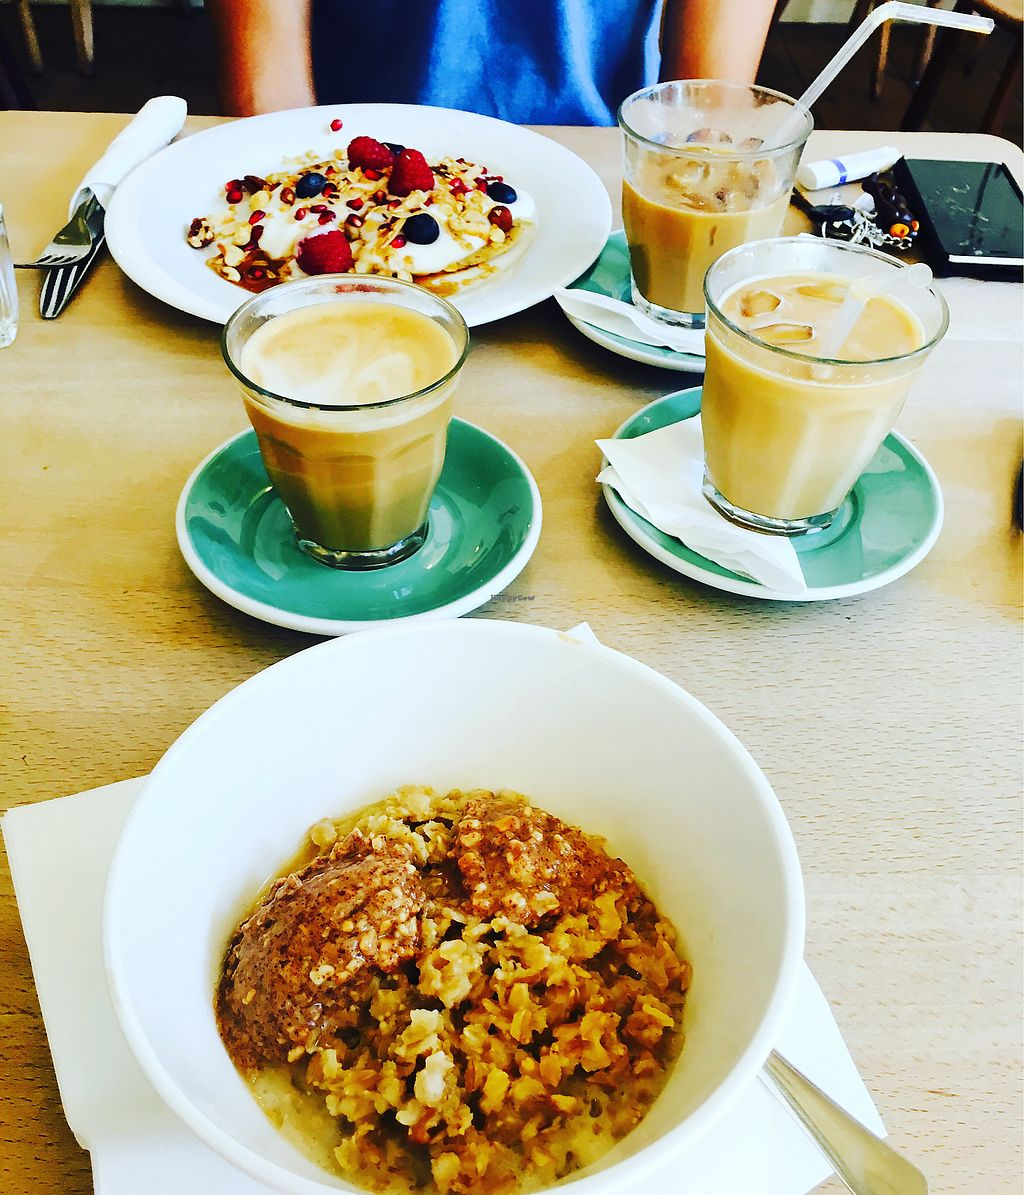 """Photo of Espresso Library  by <a href=""""/members/profile/JamesDowns"""">JamesDowns</a> <br/>Vegan bfast featuring three coffees ? <br/> September 7, 2017  - <a href='/contact/abuse/image/65013/301744'>Report</a>"""